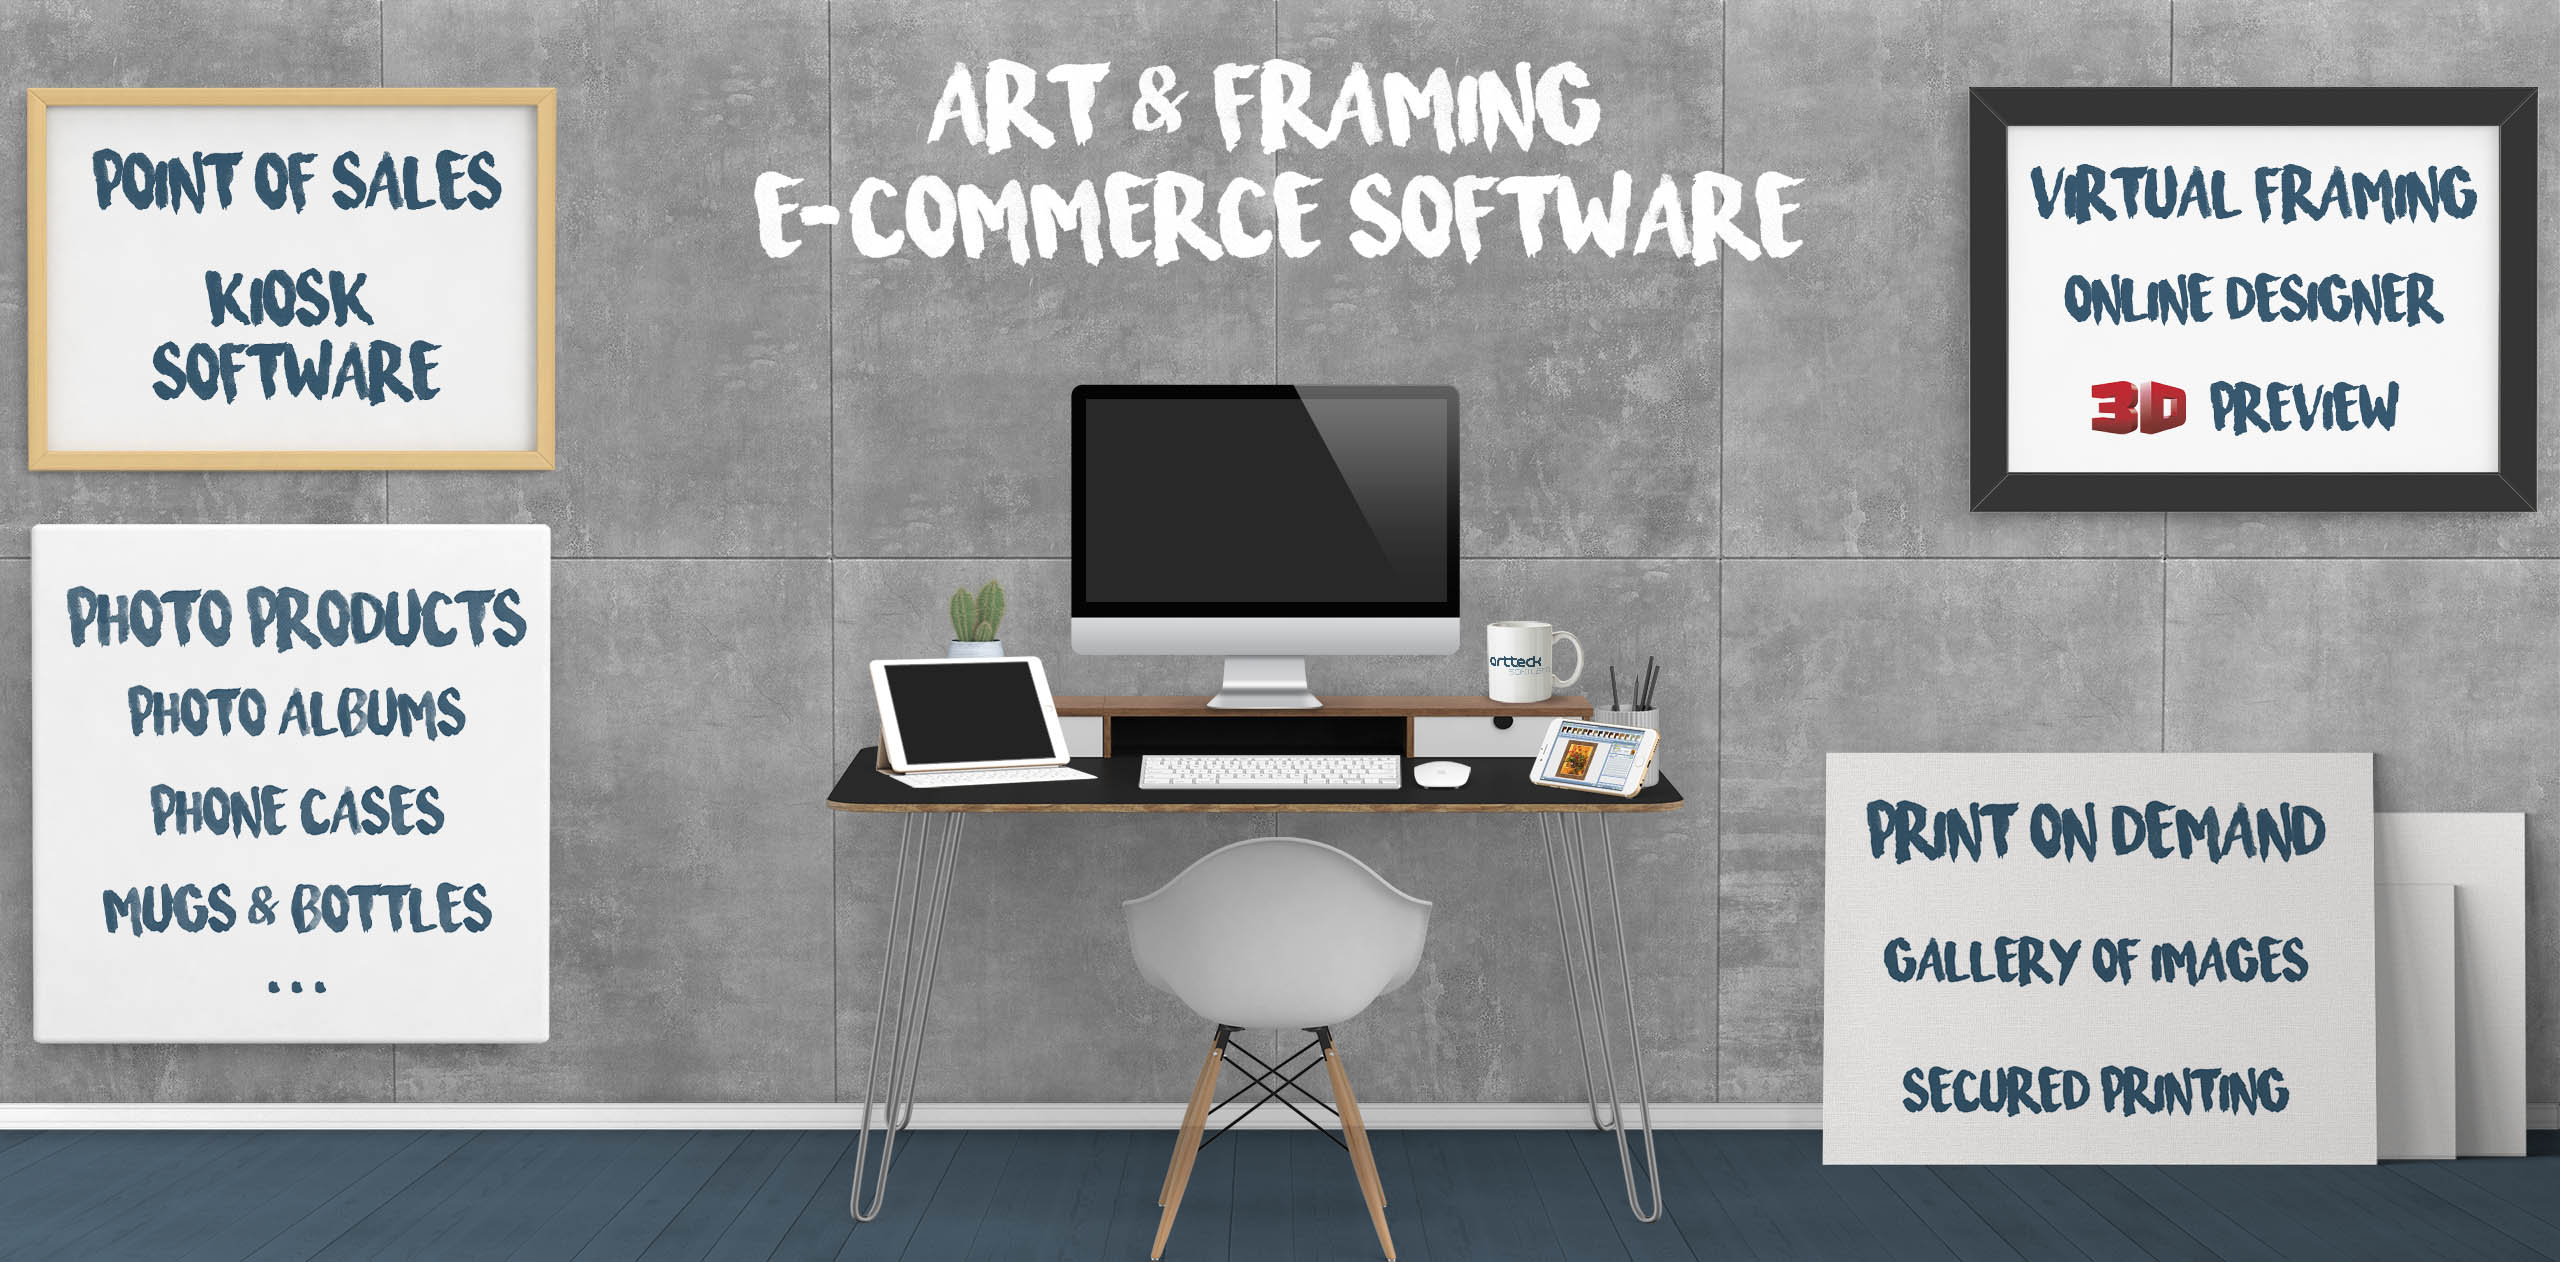 Art & Framing e-Commerce Software